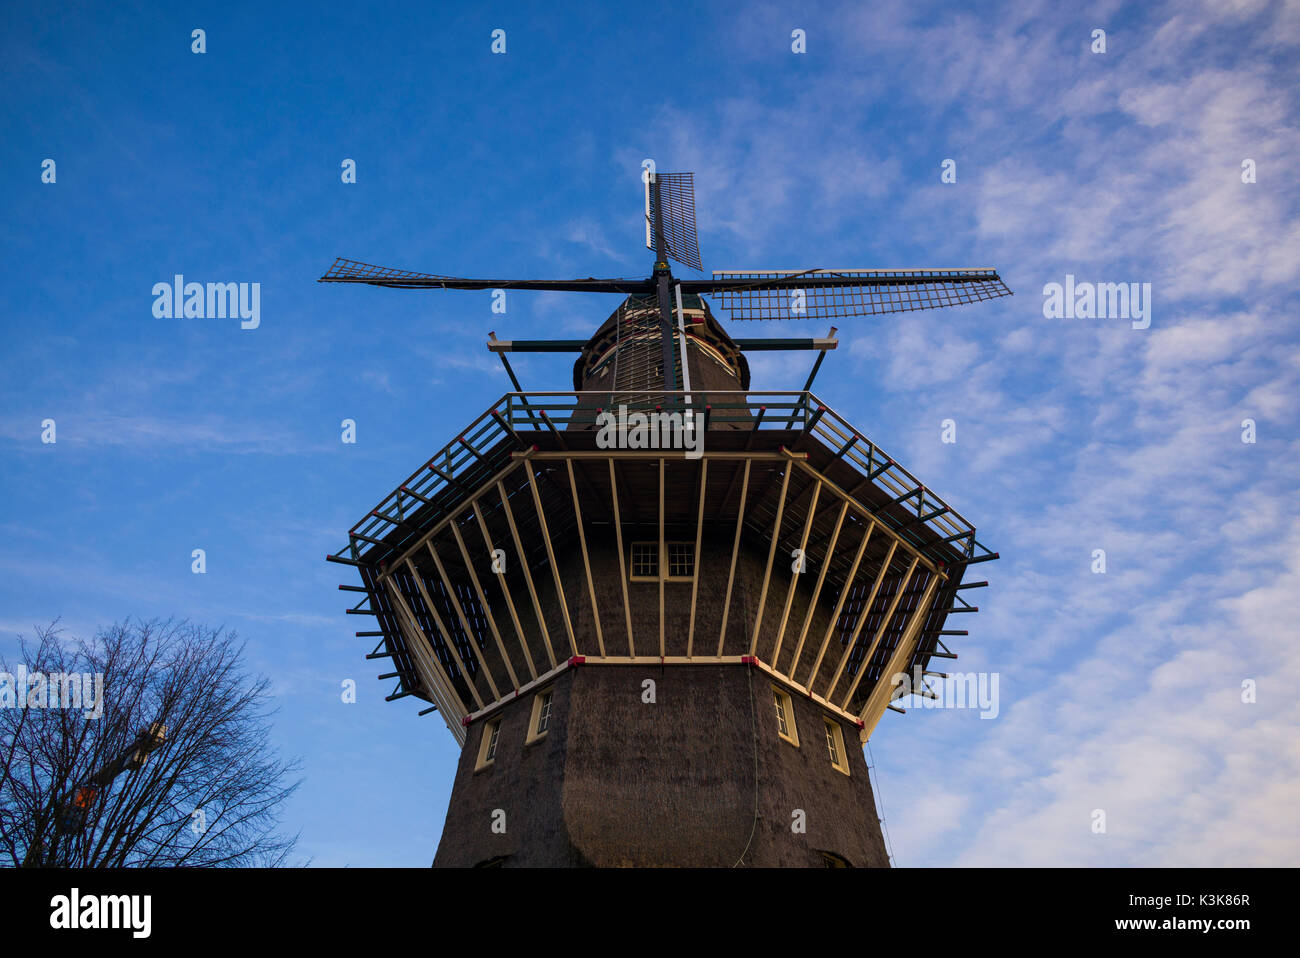 Netherlands, Amsterdam, Eastern Docklands, De Gooyer Windmill - Stock Image